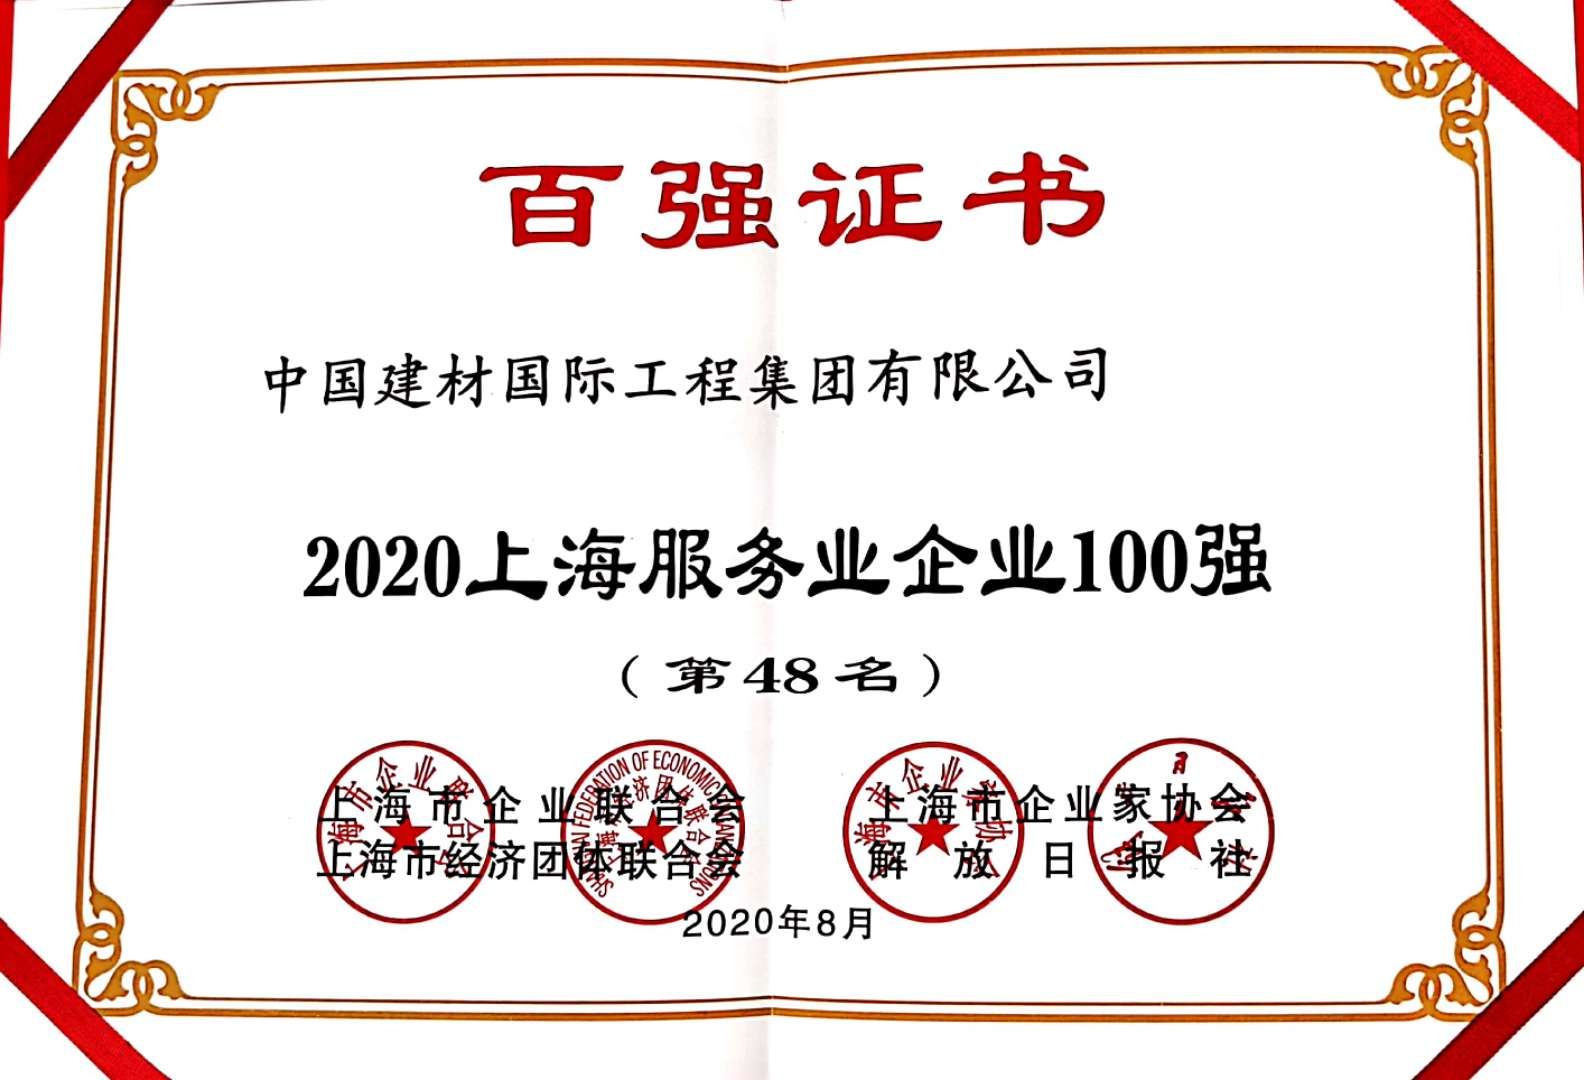 Top 100 Shanghai service enterprises in 2020 (48th). Jpg